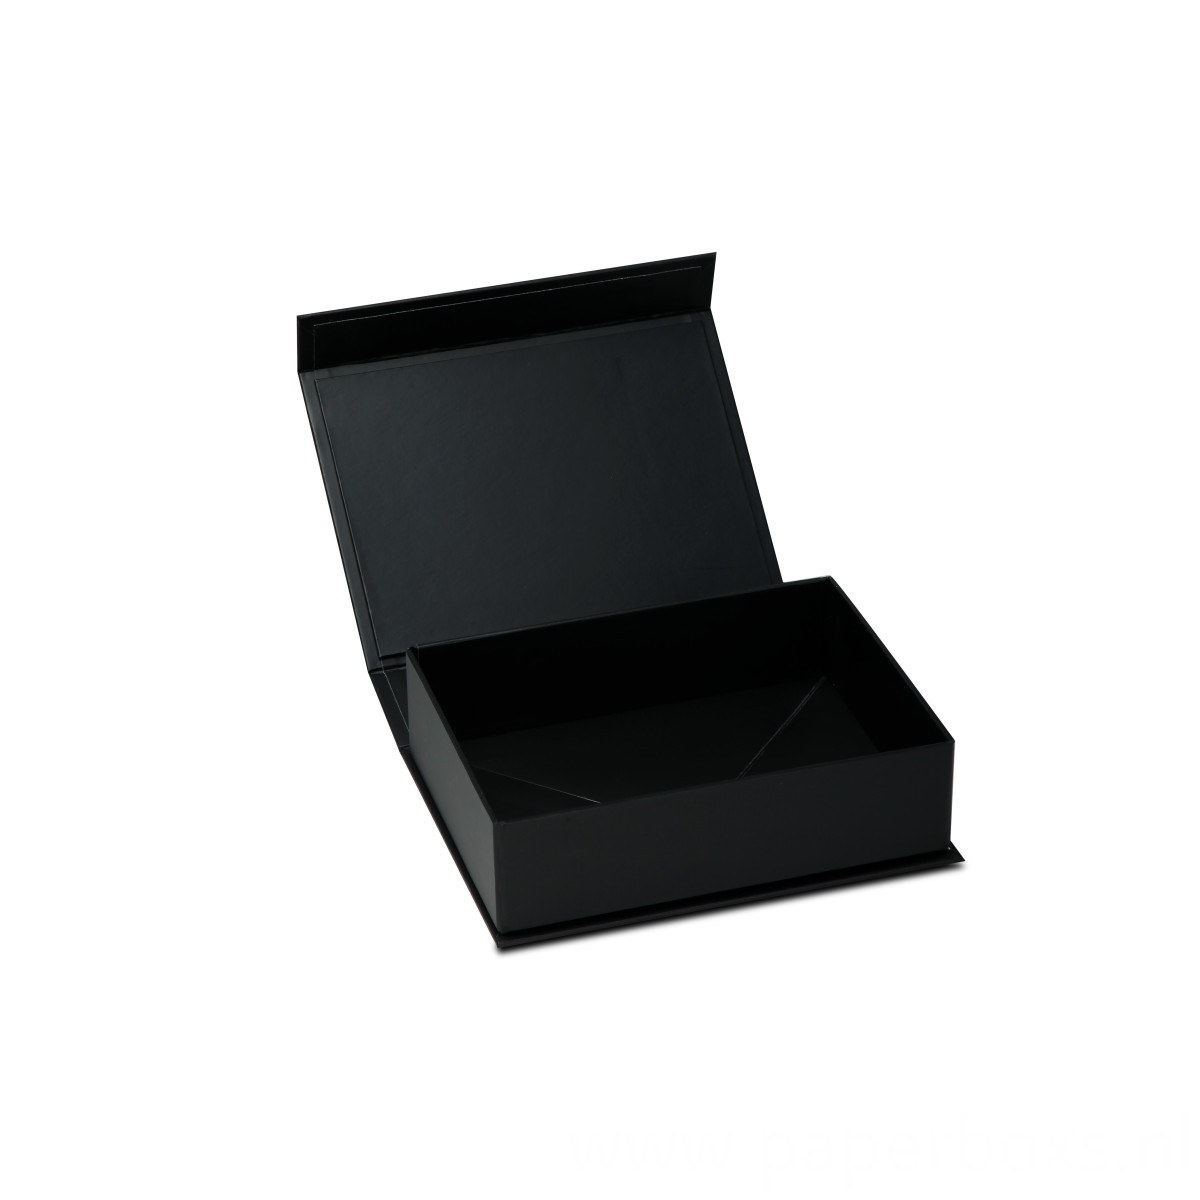 Cailang Printing black collapsible box with side way folding